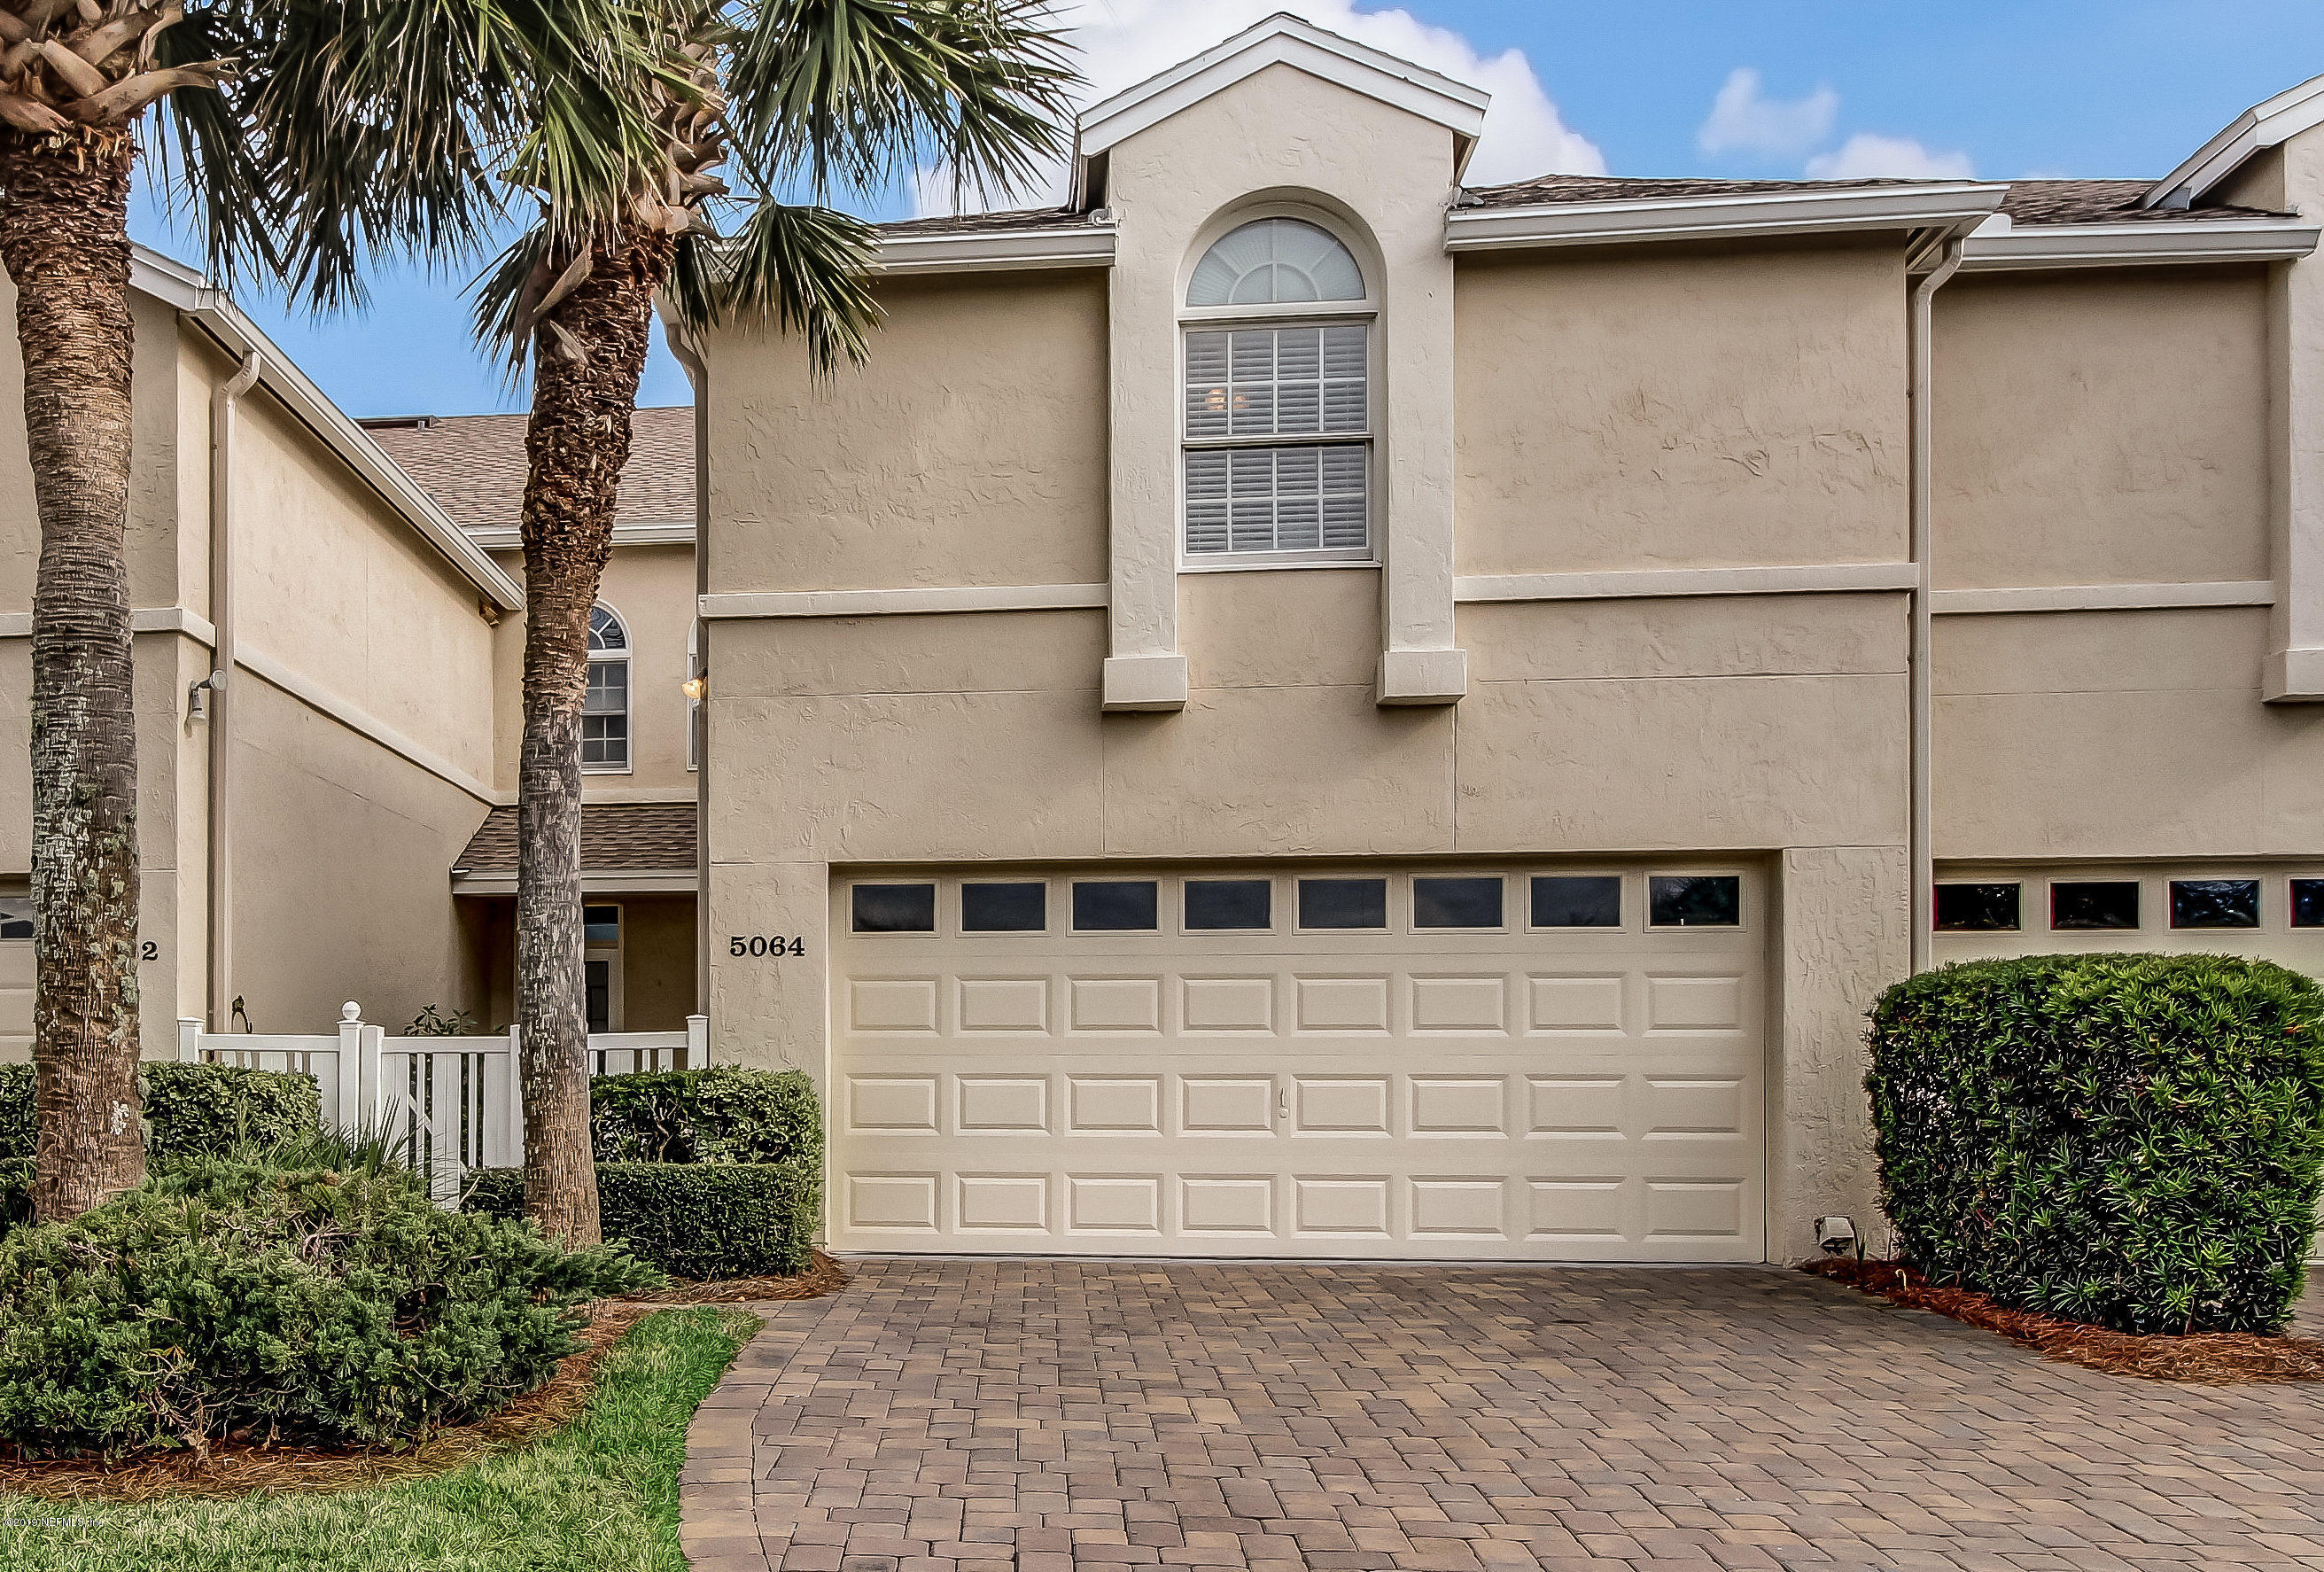 5064 OUTRIGGER, FERNANDINA BEACH, FLORIDA 32034, 3 Bedrooms Bedrooms, ,3 BathroomsBathrooms,Residential - townhome,For sale,OUTRIGGER,975071